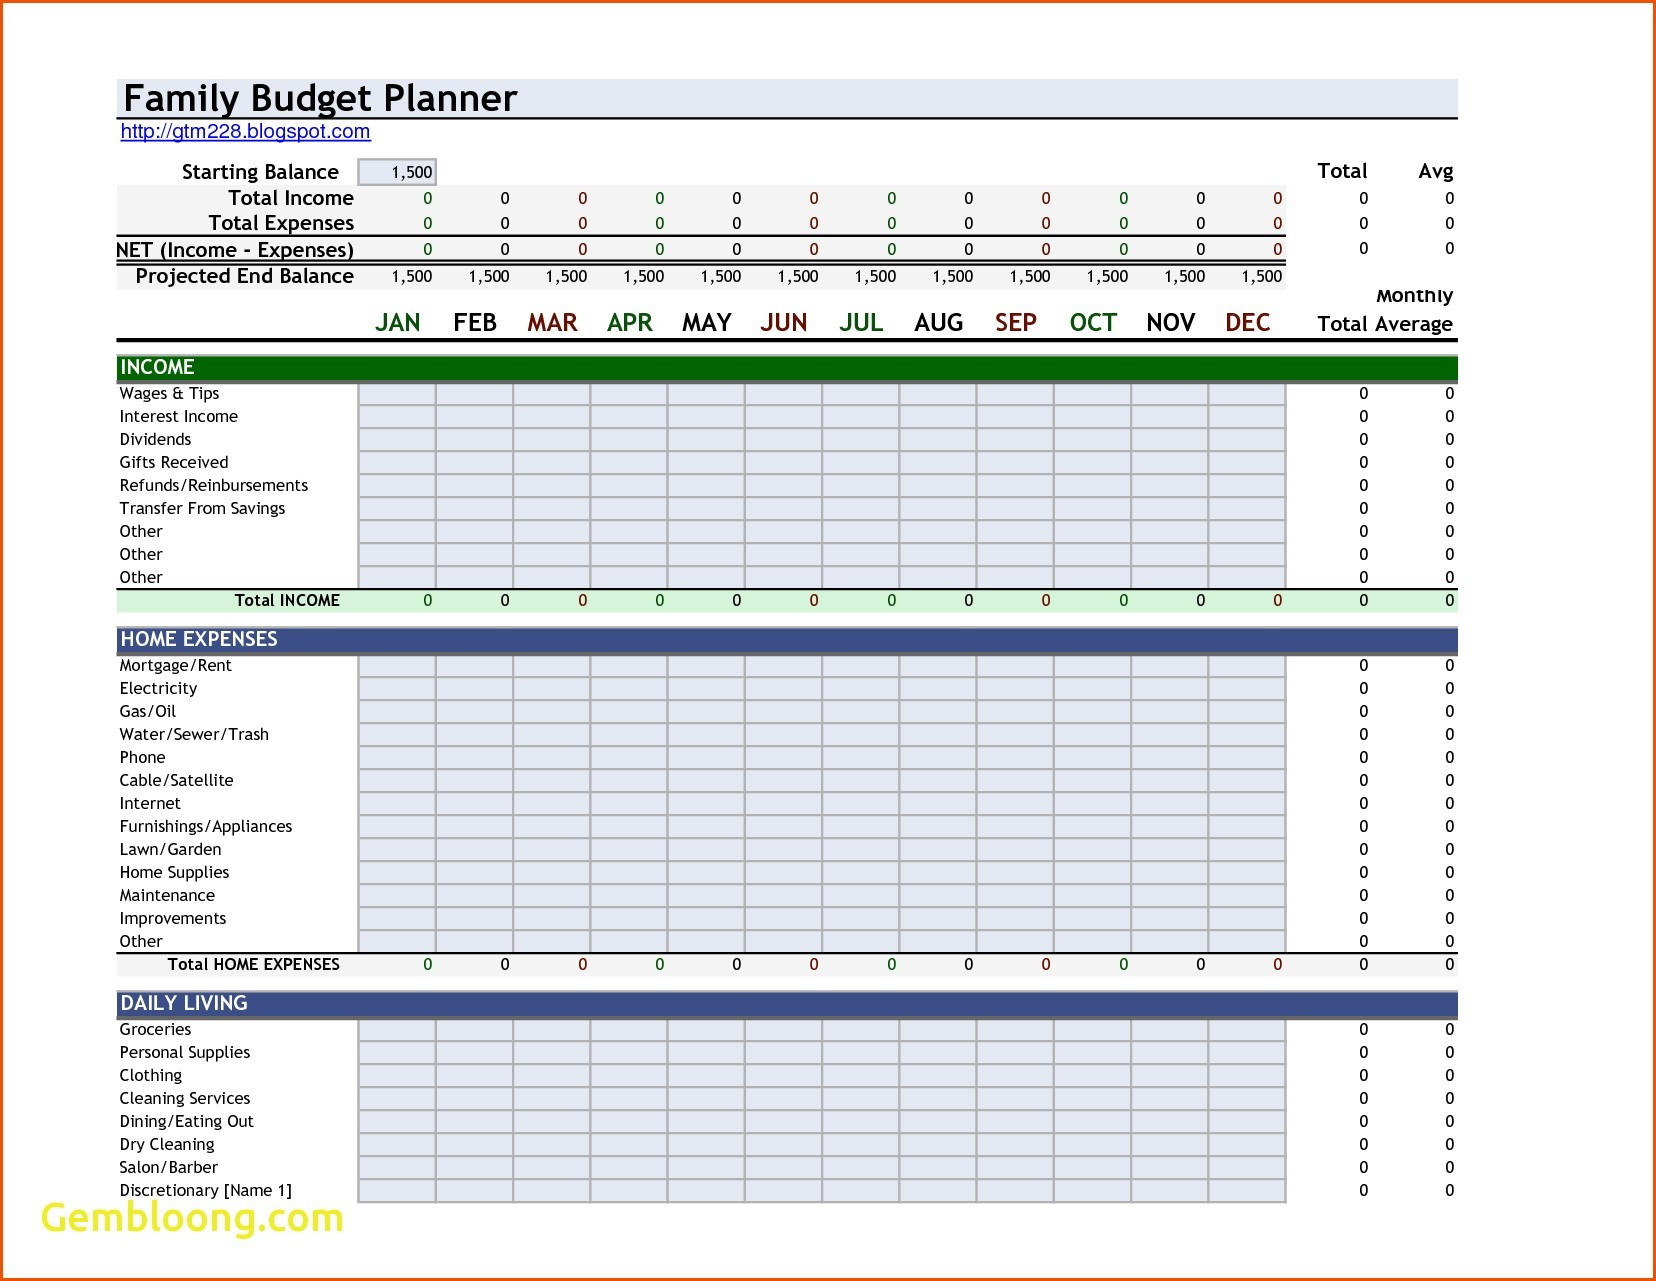 Household Budget Calculator Spreadsheet Then Book Bud Excel Template Intended For Household Budget Calculator Spreadsheet